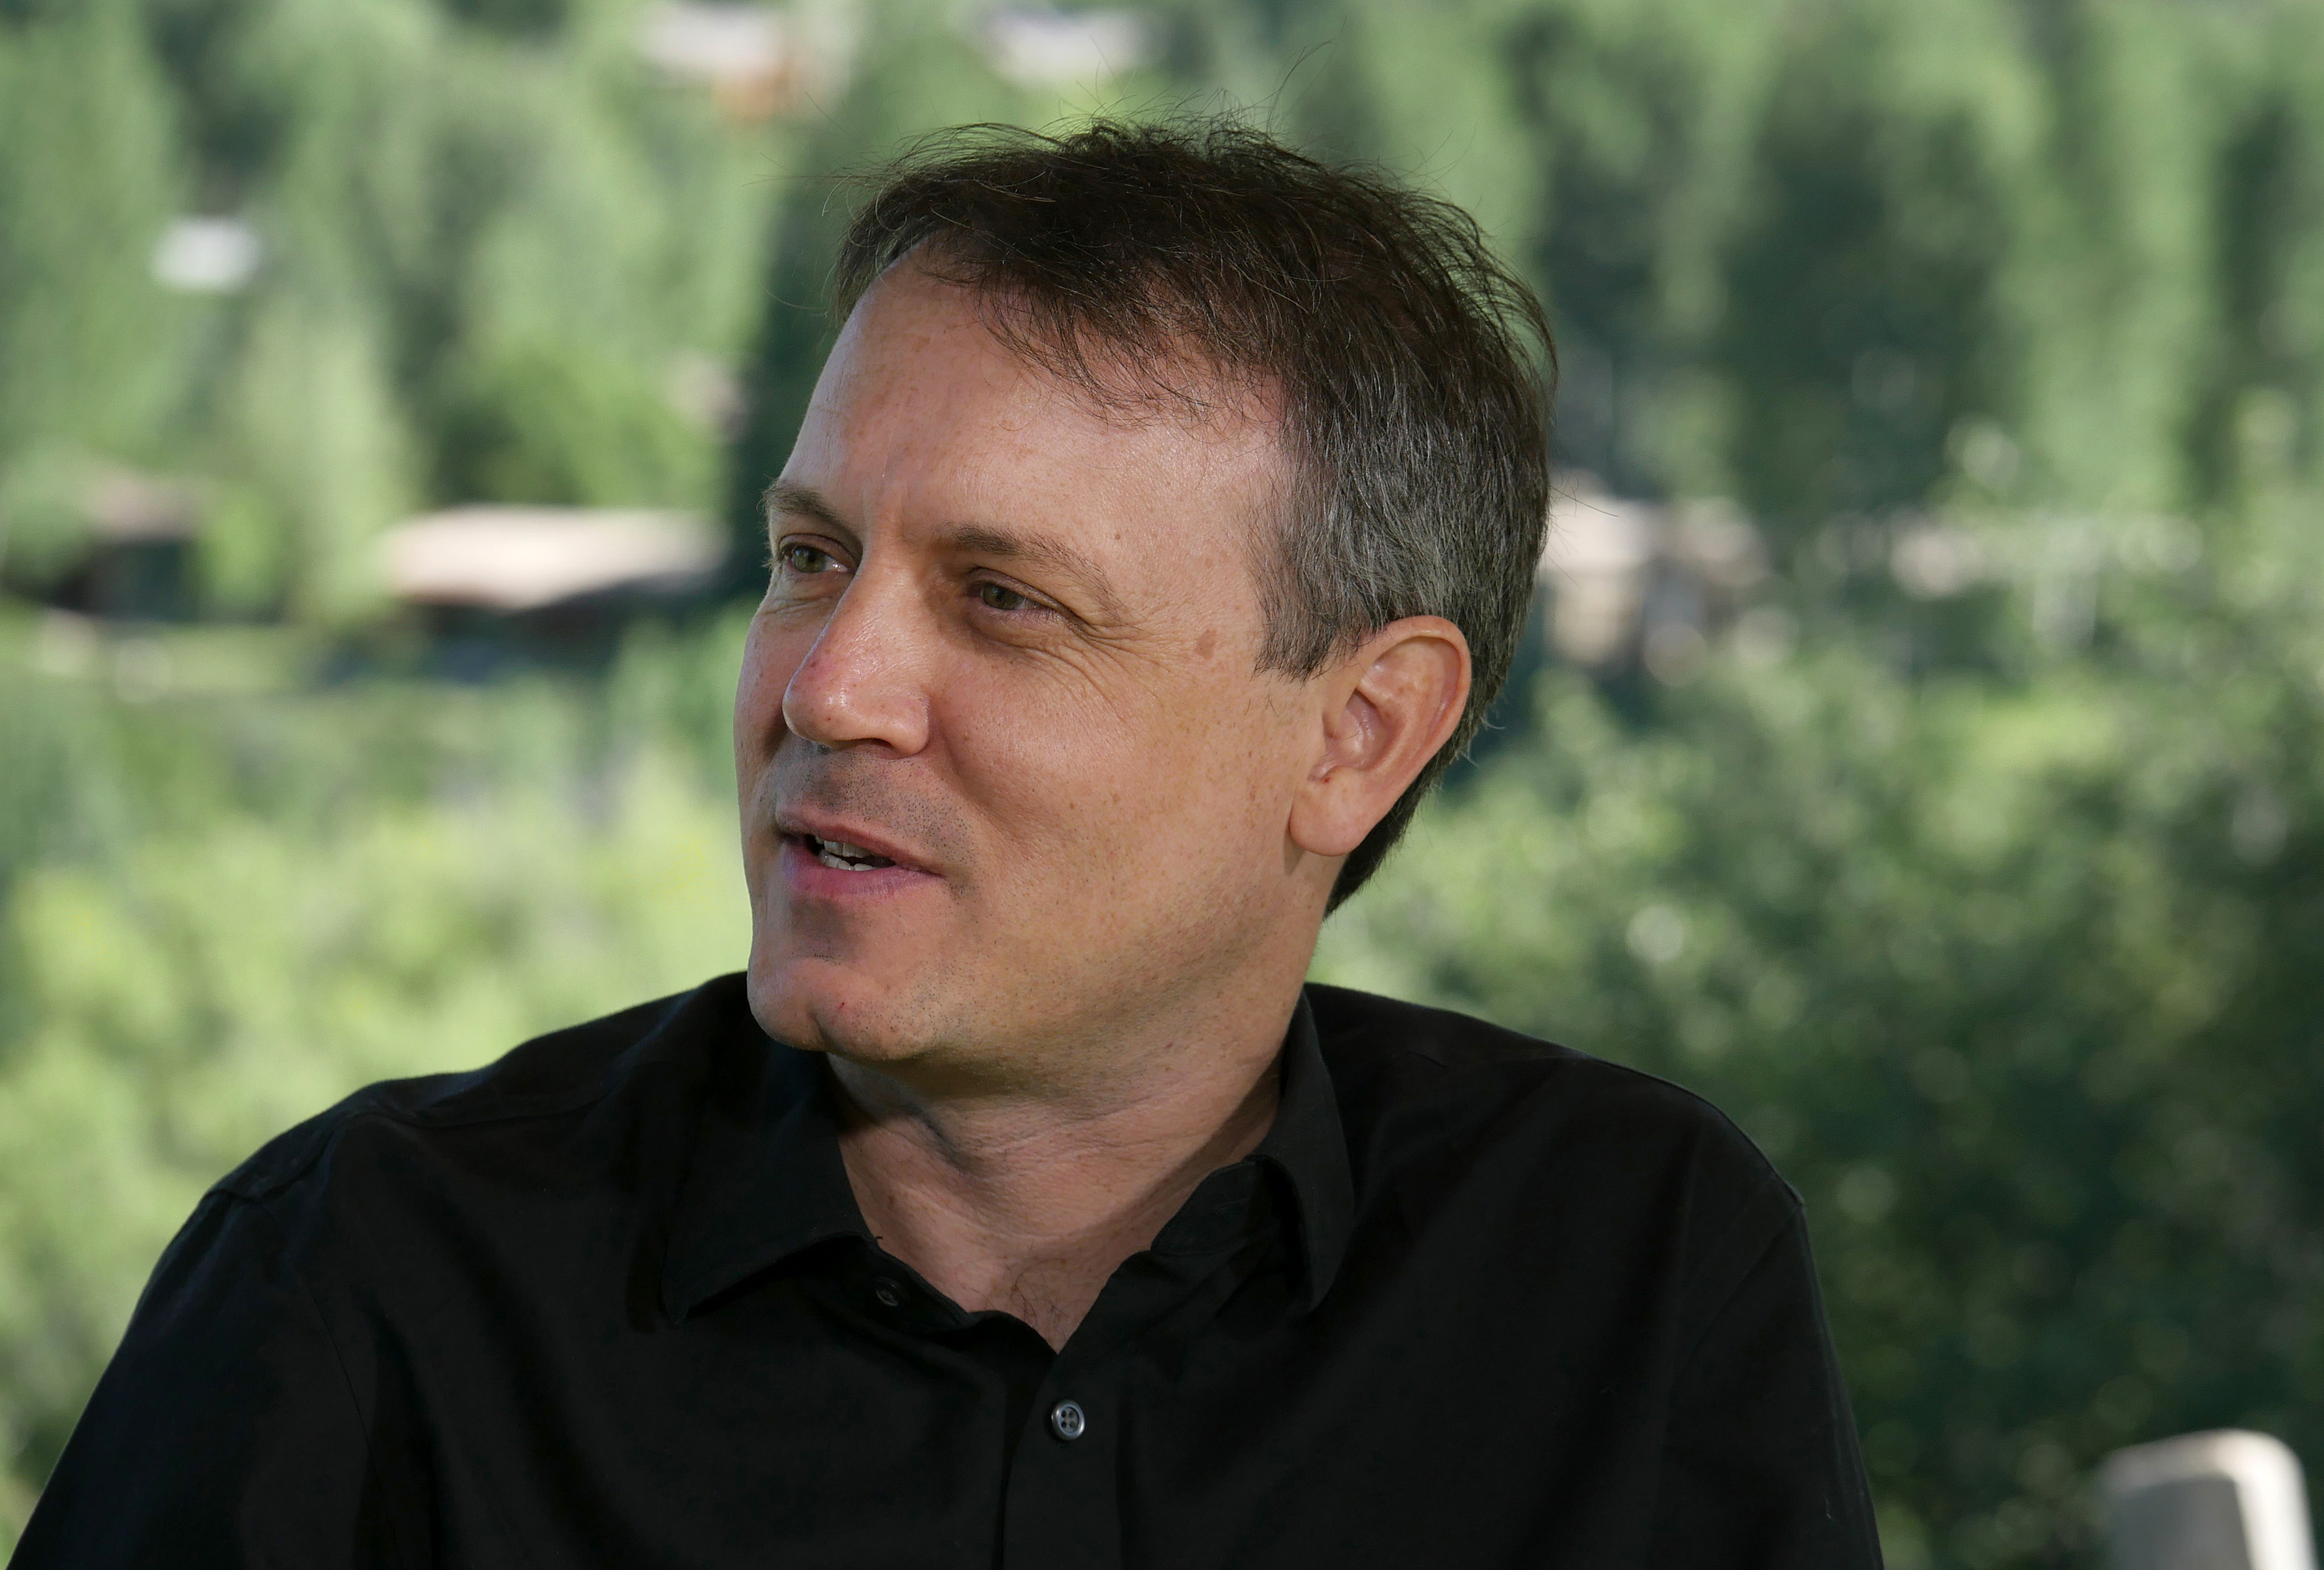 Brian Knappenberger speaks during a Bloomberg Television interview in Aspen, CO, on July 1, 2014.